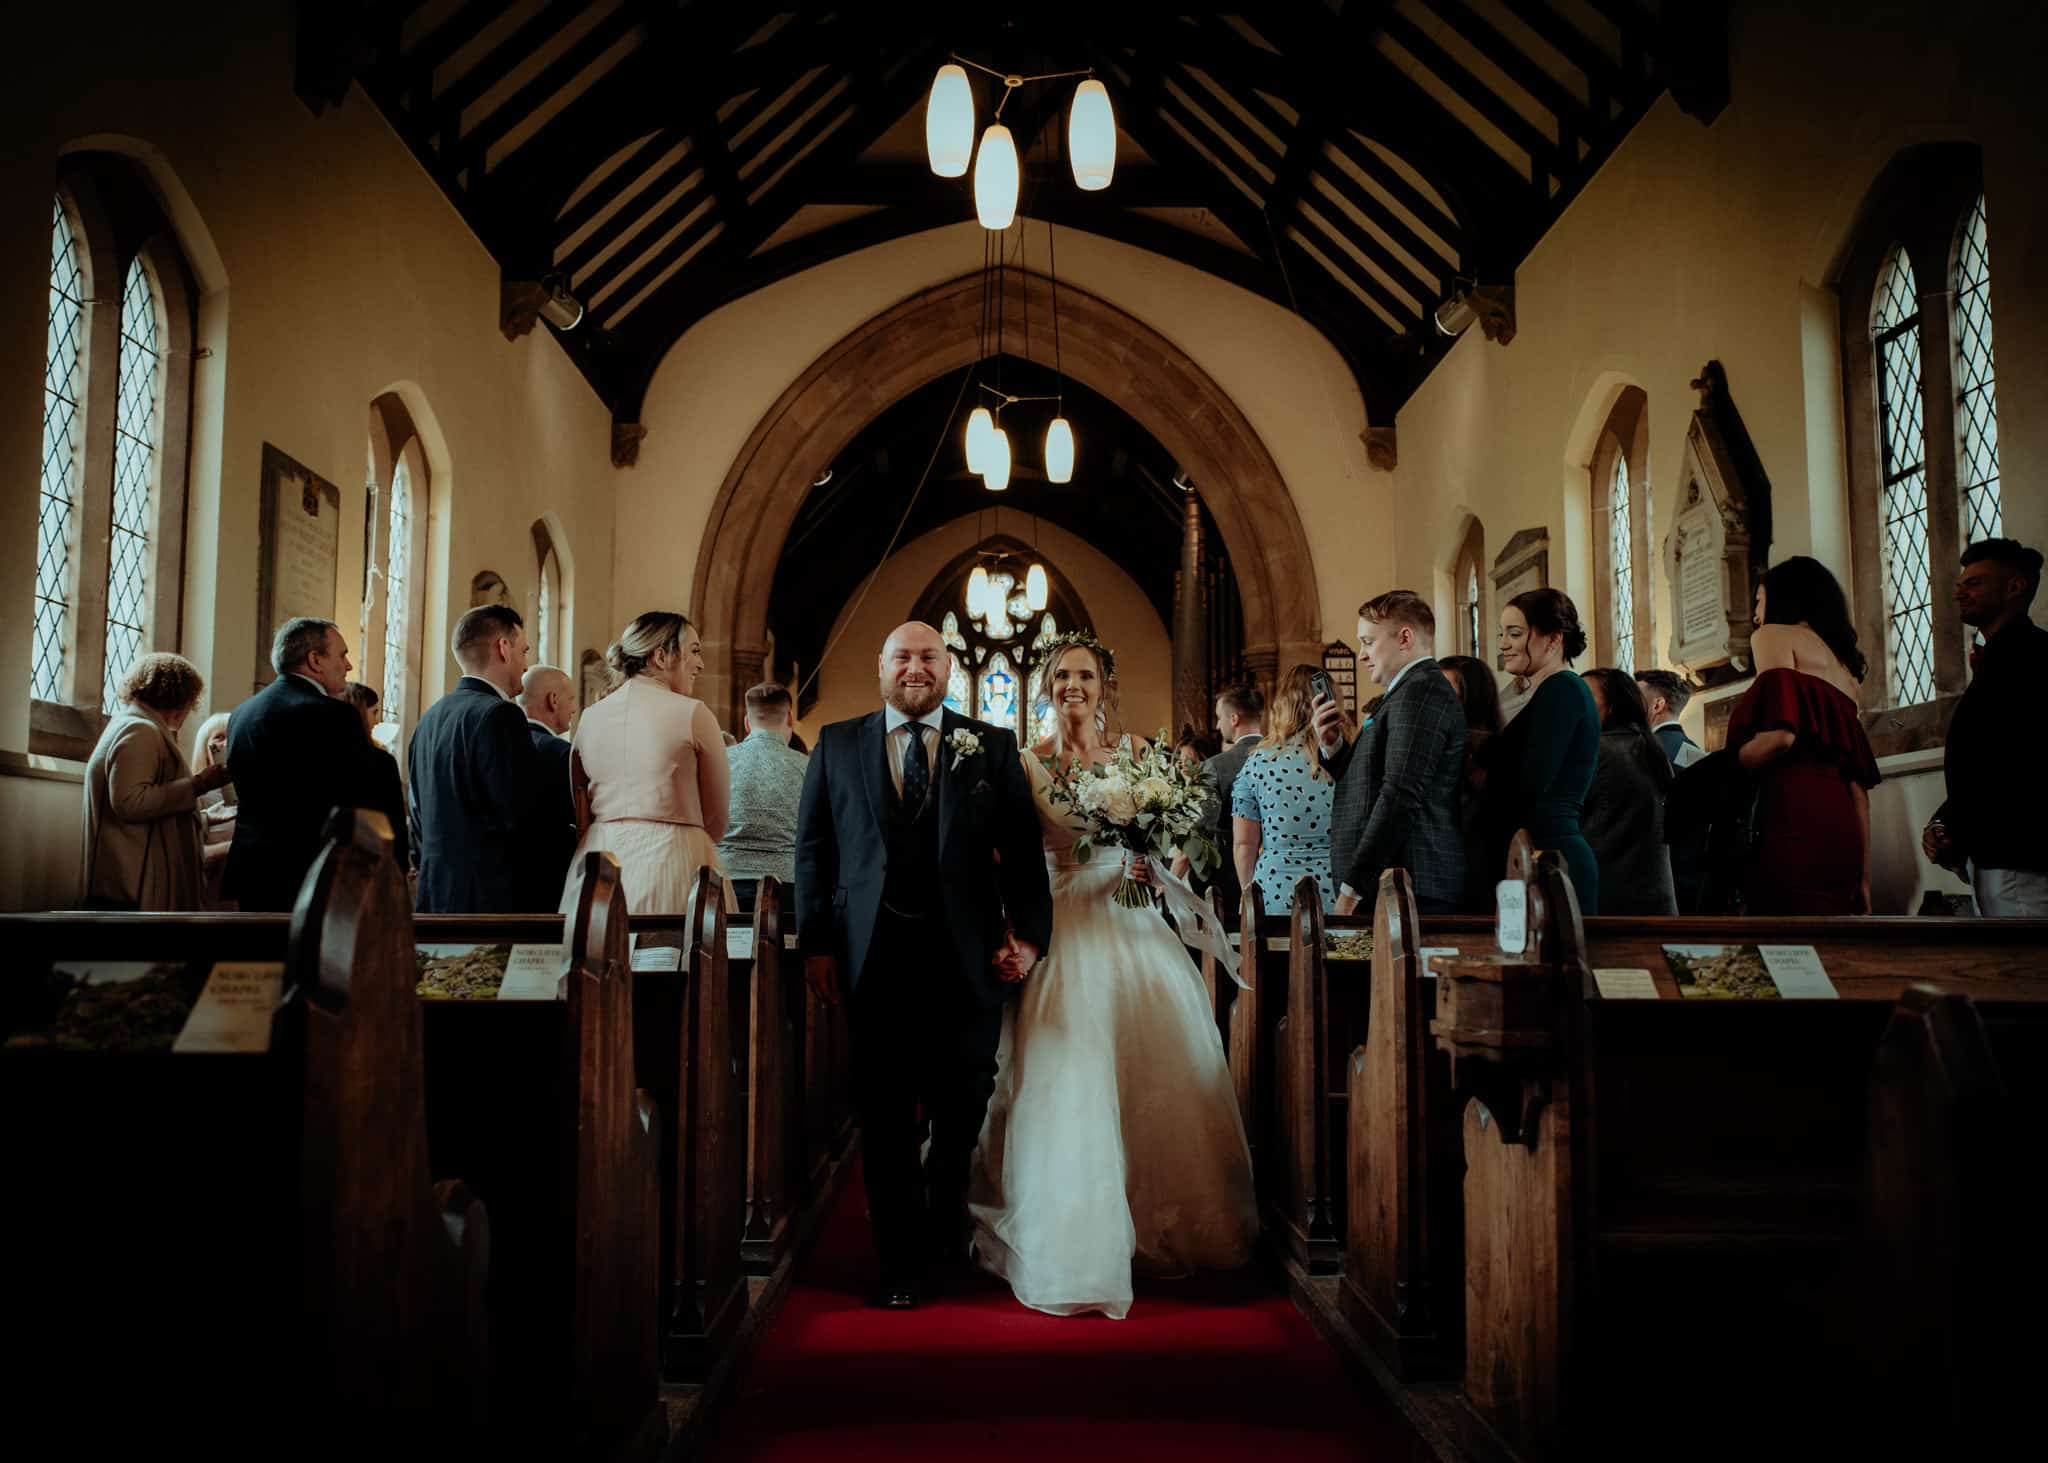 Bride & groom walk out of church